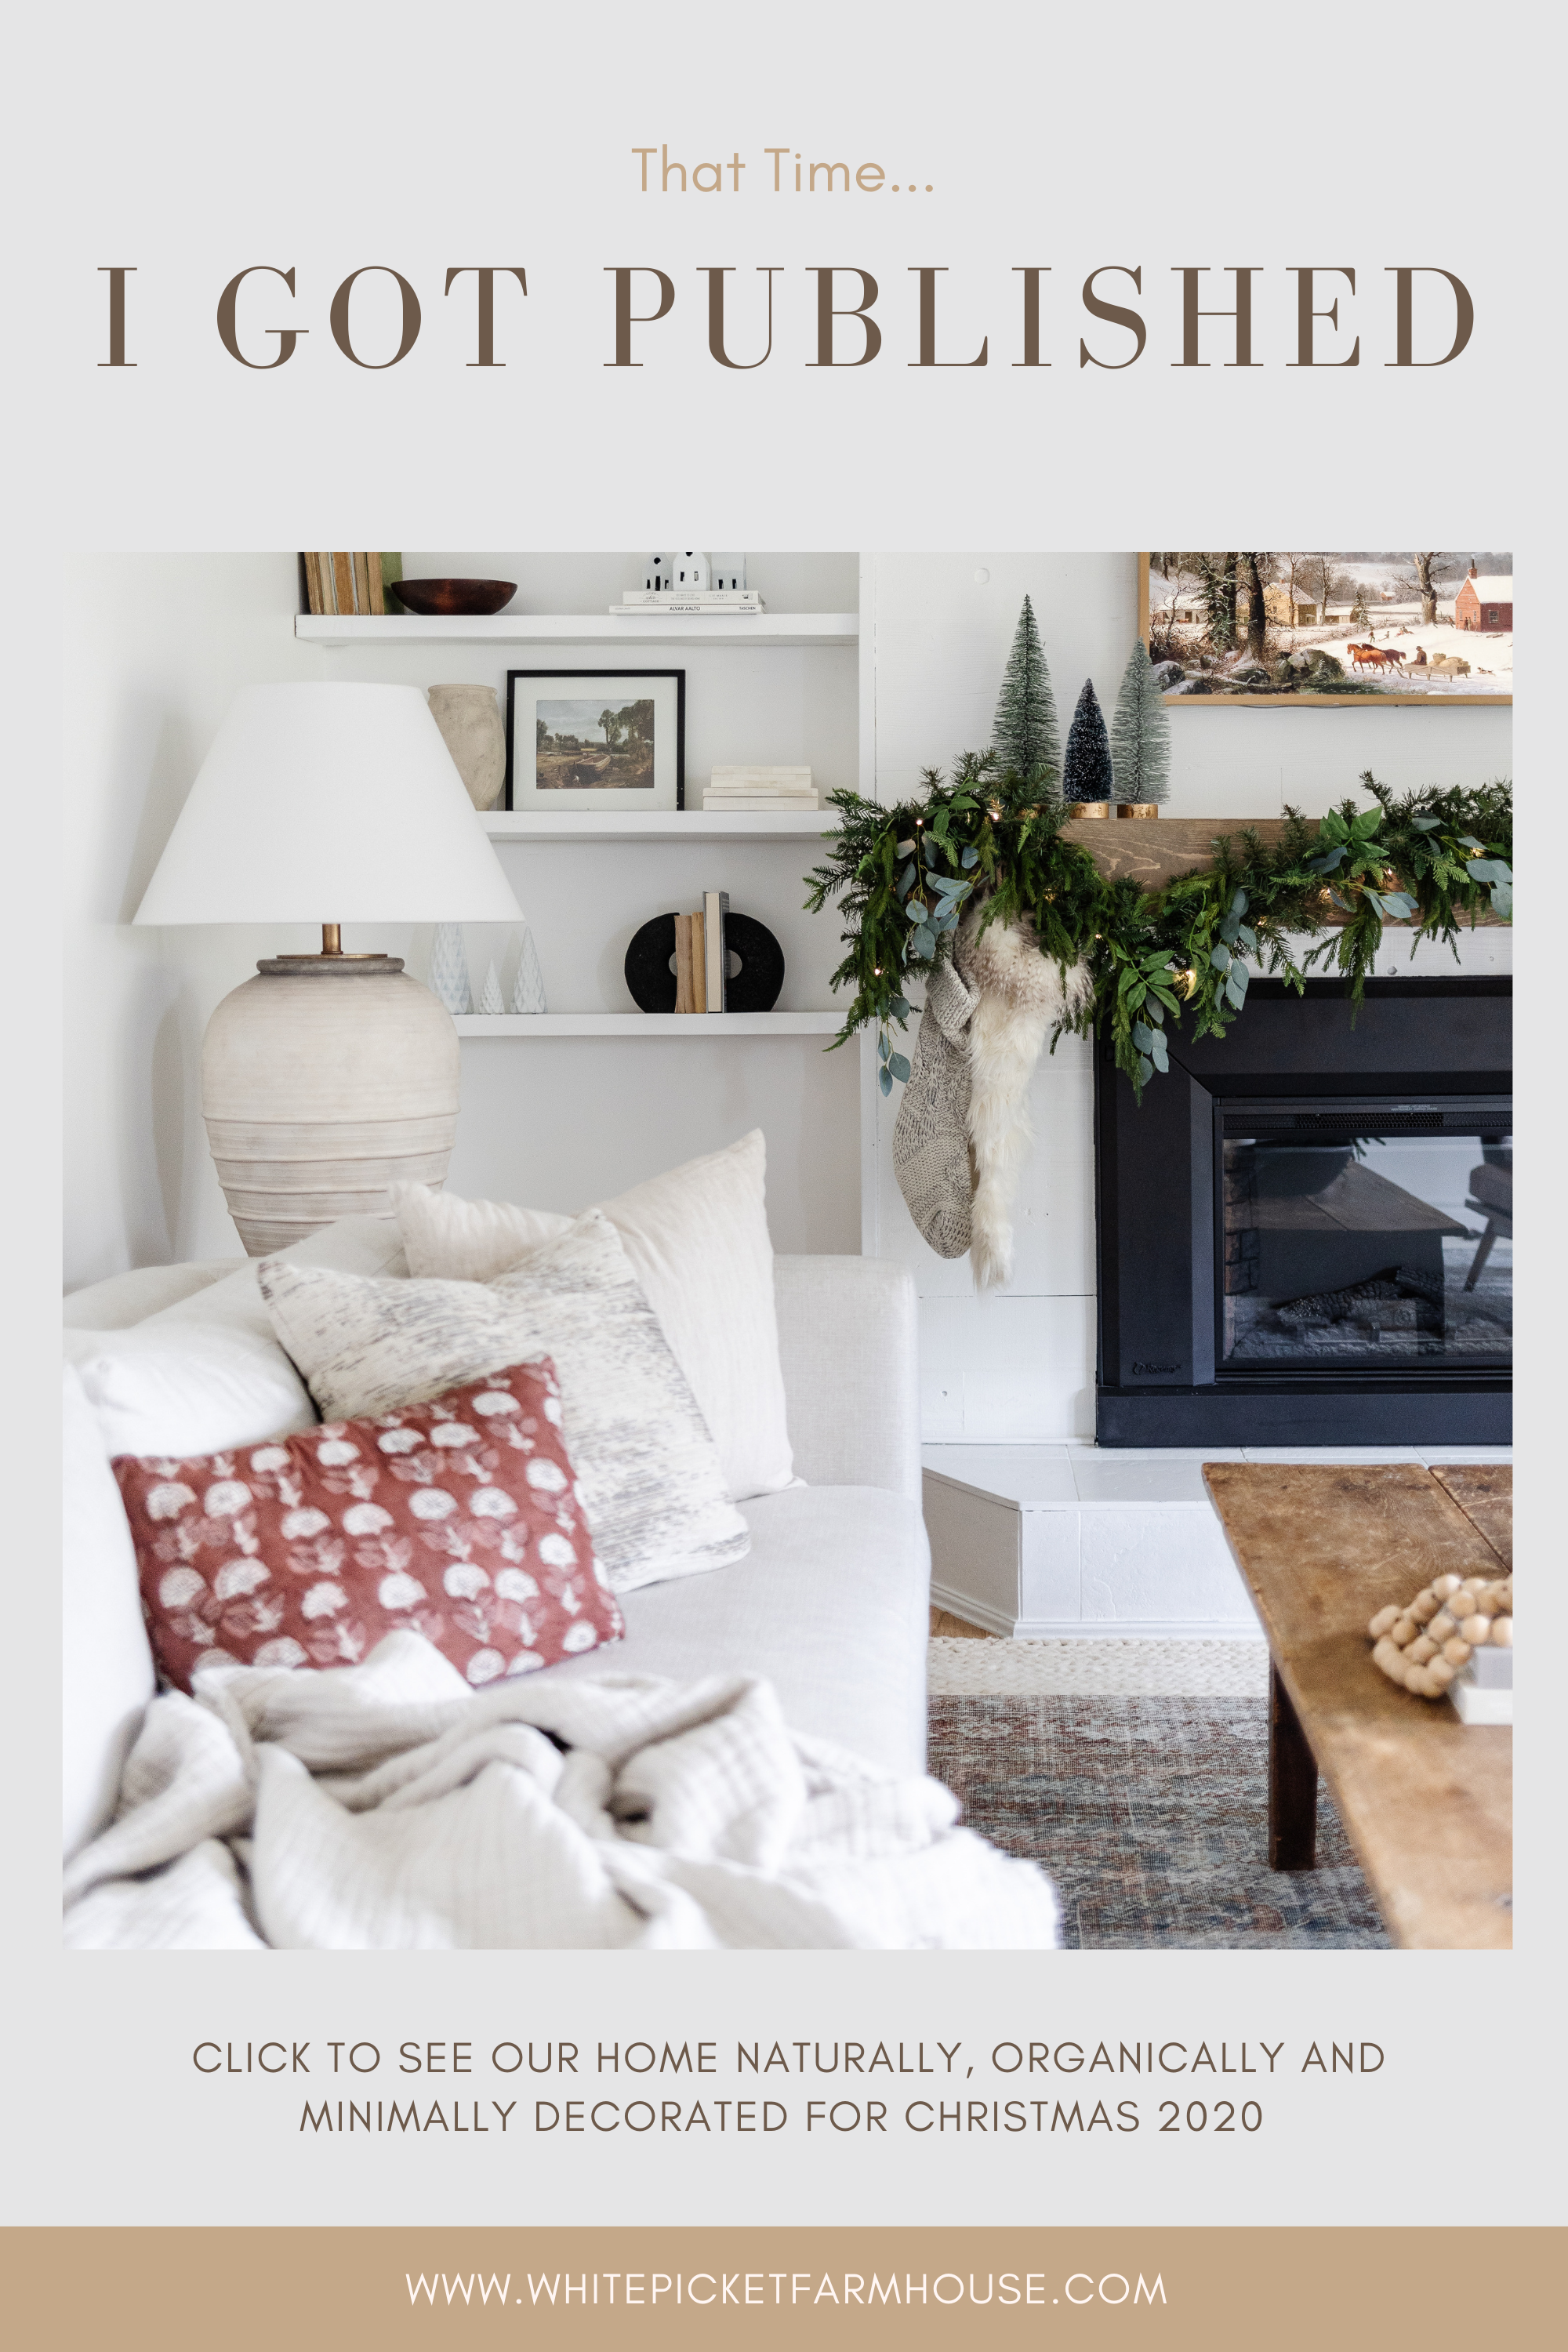 That Time I Got Published. Our Home, White Picket Farmhouse Was Published In A Magazine! Head On Over To To Blog To See The Article and How We Decorated Our Home for Christmas 2020 With Vintage, DIY'd and Thrifted Finds! Natural Christmas Decor.